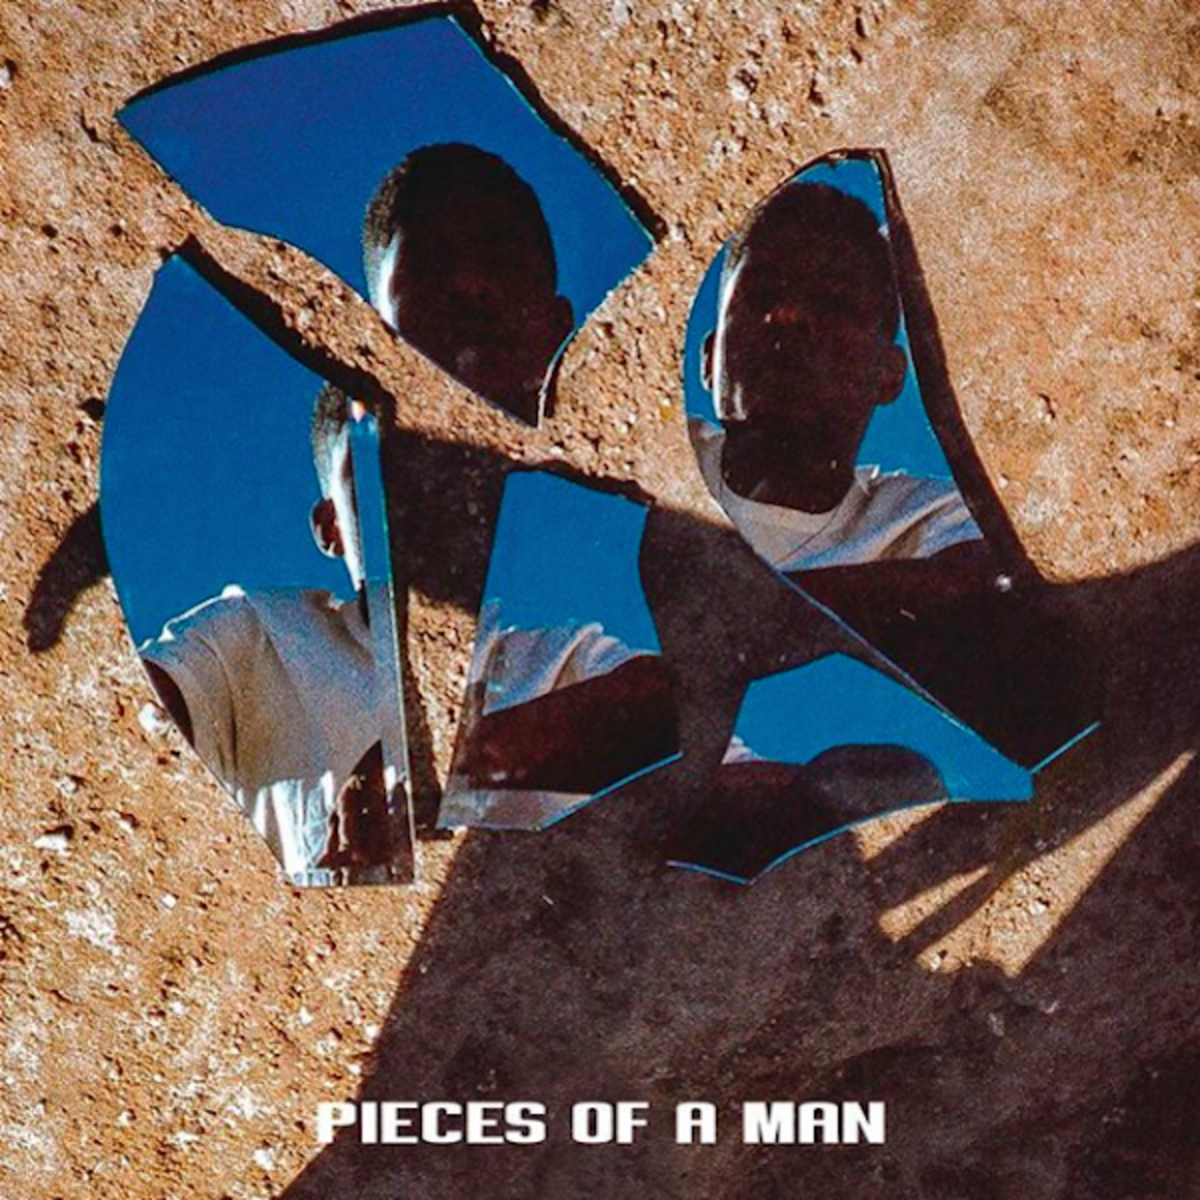 Mick Jenkins - Pieces of a ManOctober 26thA glorious exploration of manhood and blackness today. The Chicago native just slays on tune after tune. Funky, thought provoking and affecting; it's as close to excellence as hip hop gets, while still paying attention to the roots of the genre. Pieces of a Man is a huge step for the local rhymer. Thalia Hall is hosting him on February 2nd. Tix are $22 - $30.-KPL